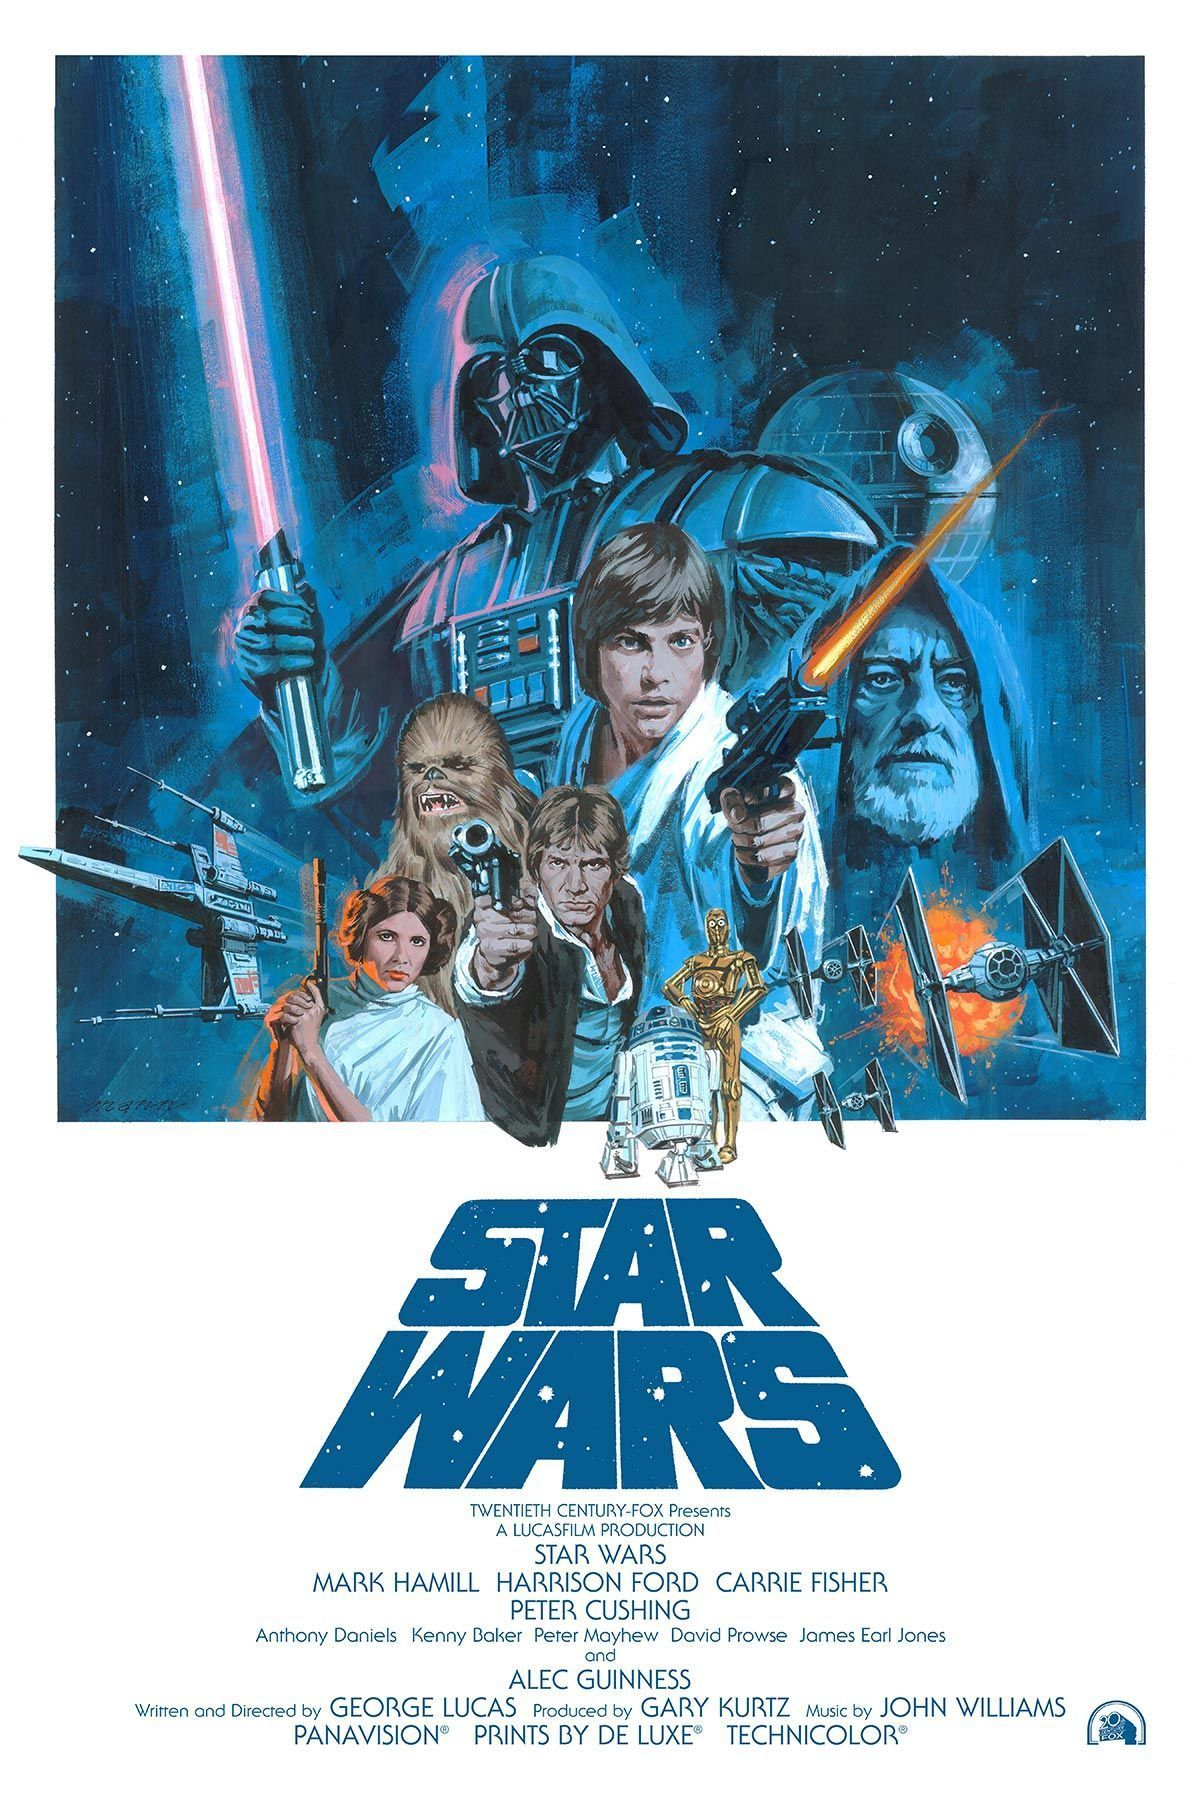 Star Wars Episode Iv A New Hope A Episode Hope Iv New Star Wars Starwars4fullm Star Wars Painting Star Wars Movies Posters Star Wars Canvas Art